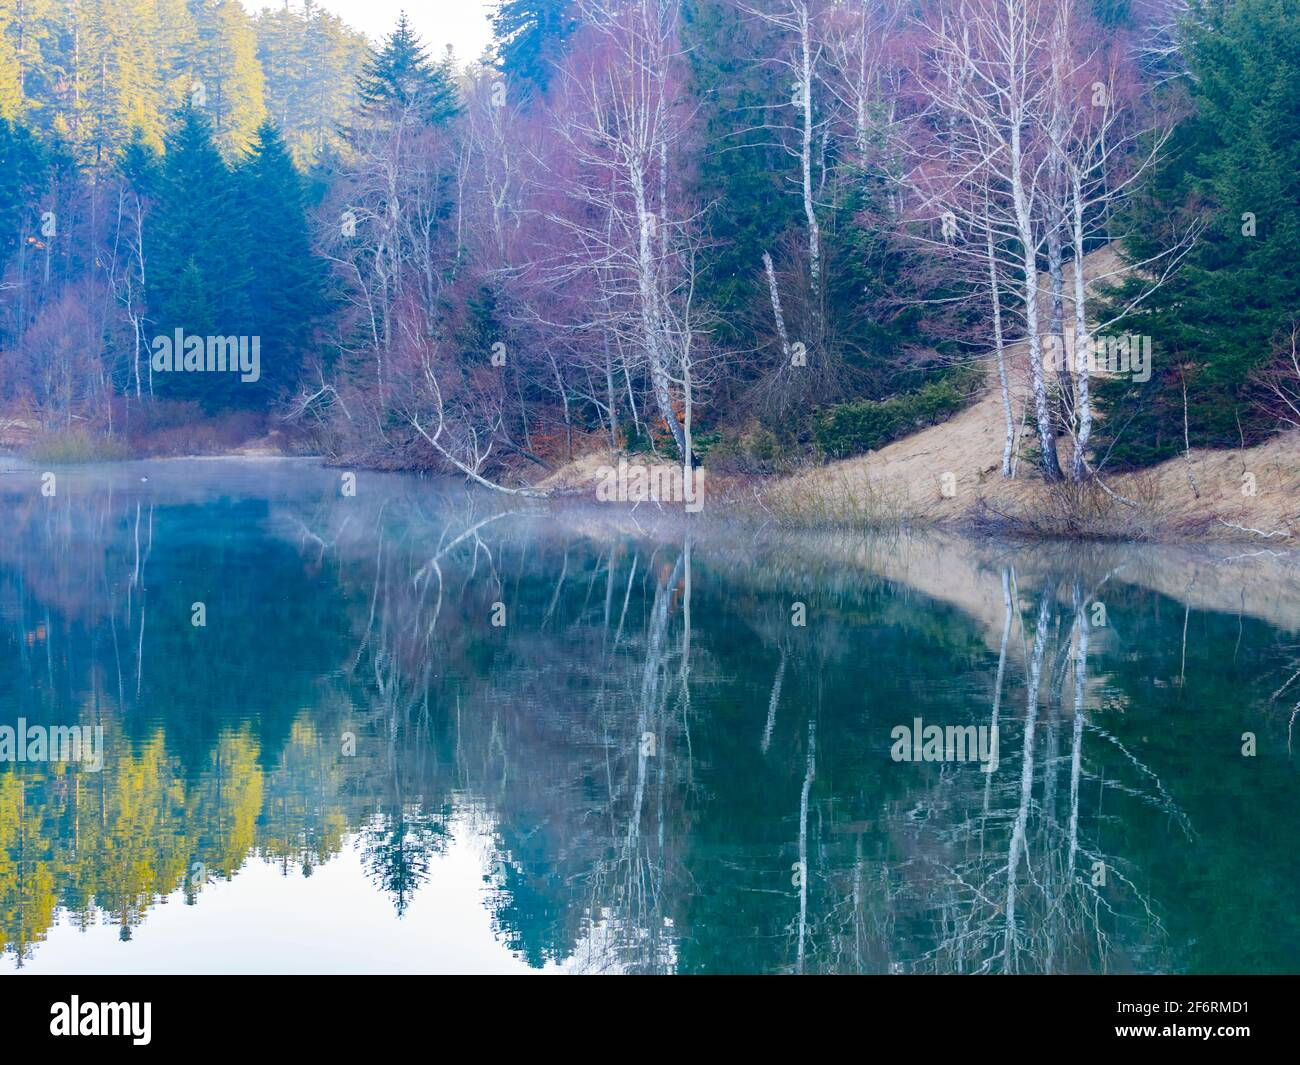 Picturesque peaceful tranquility Lokve lake in Croatia Europe Stock Photo